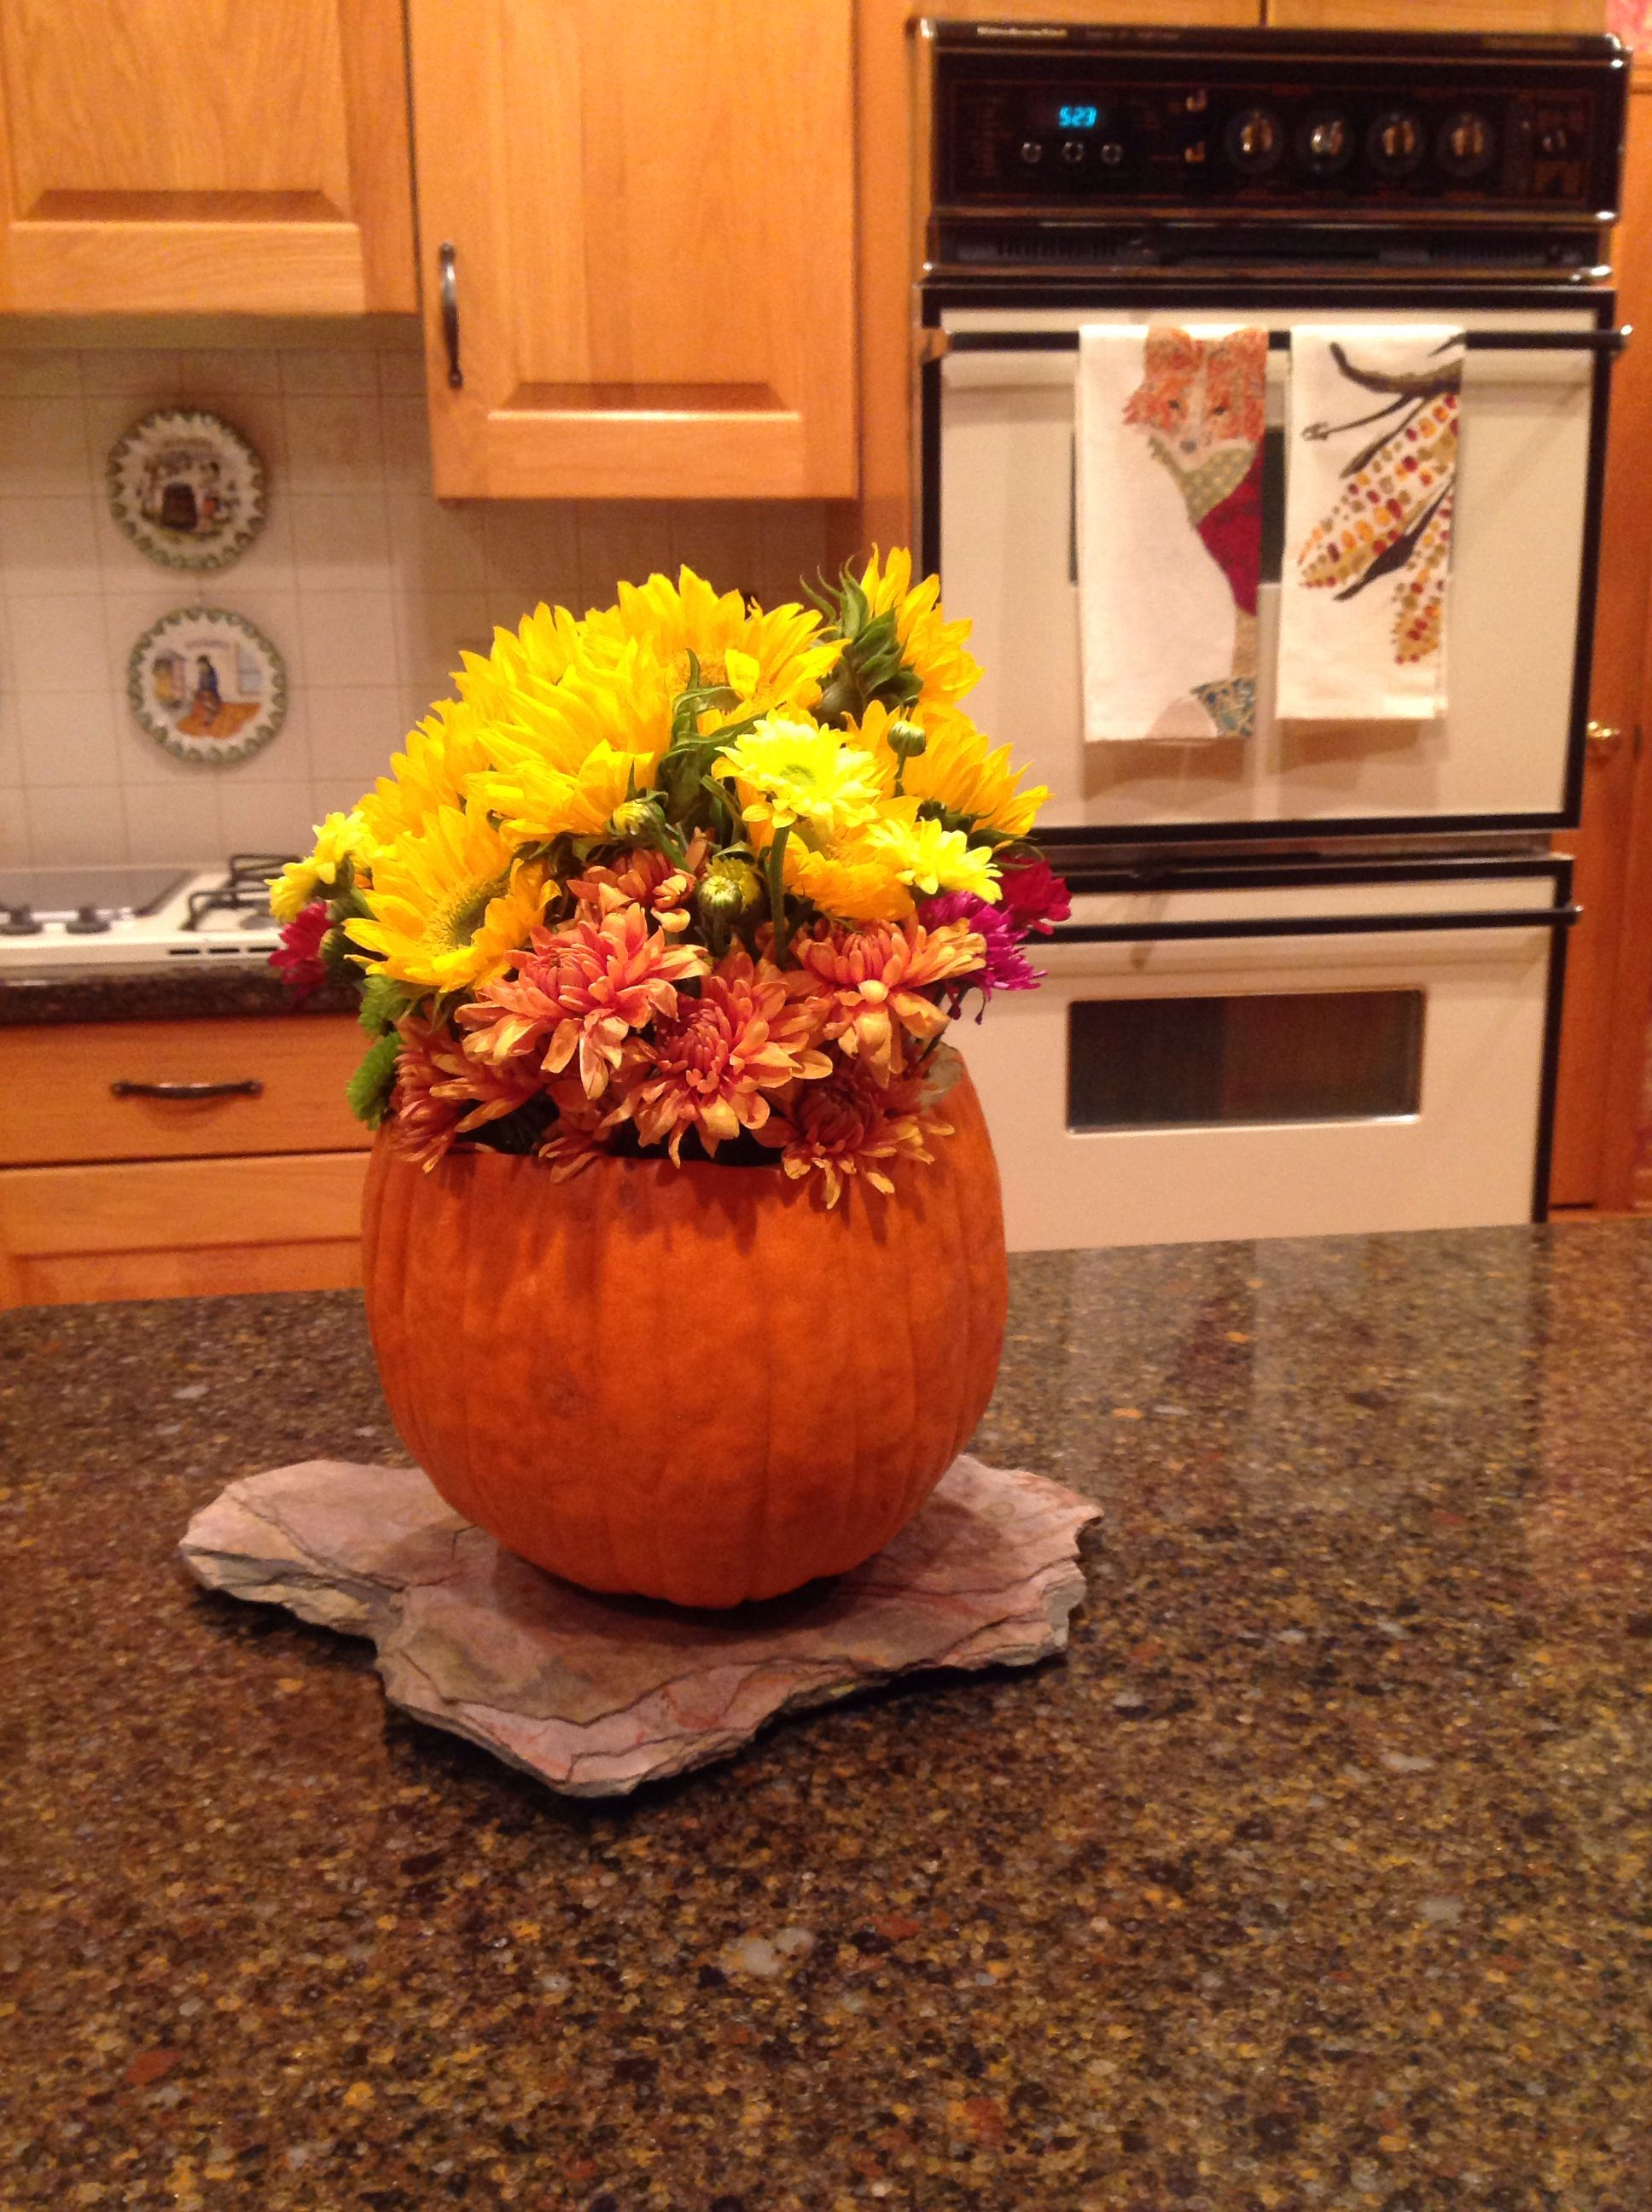 I cleaned out the inside if the pumpkin then put a vase inside a i cleaned out the inside if the pumpkin then put a vase inside a plastic reviewsmspy